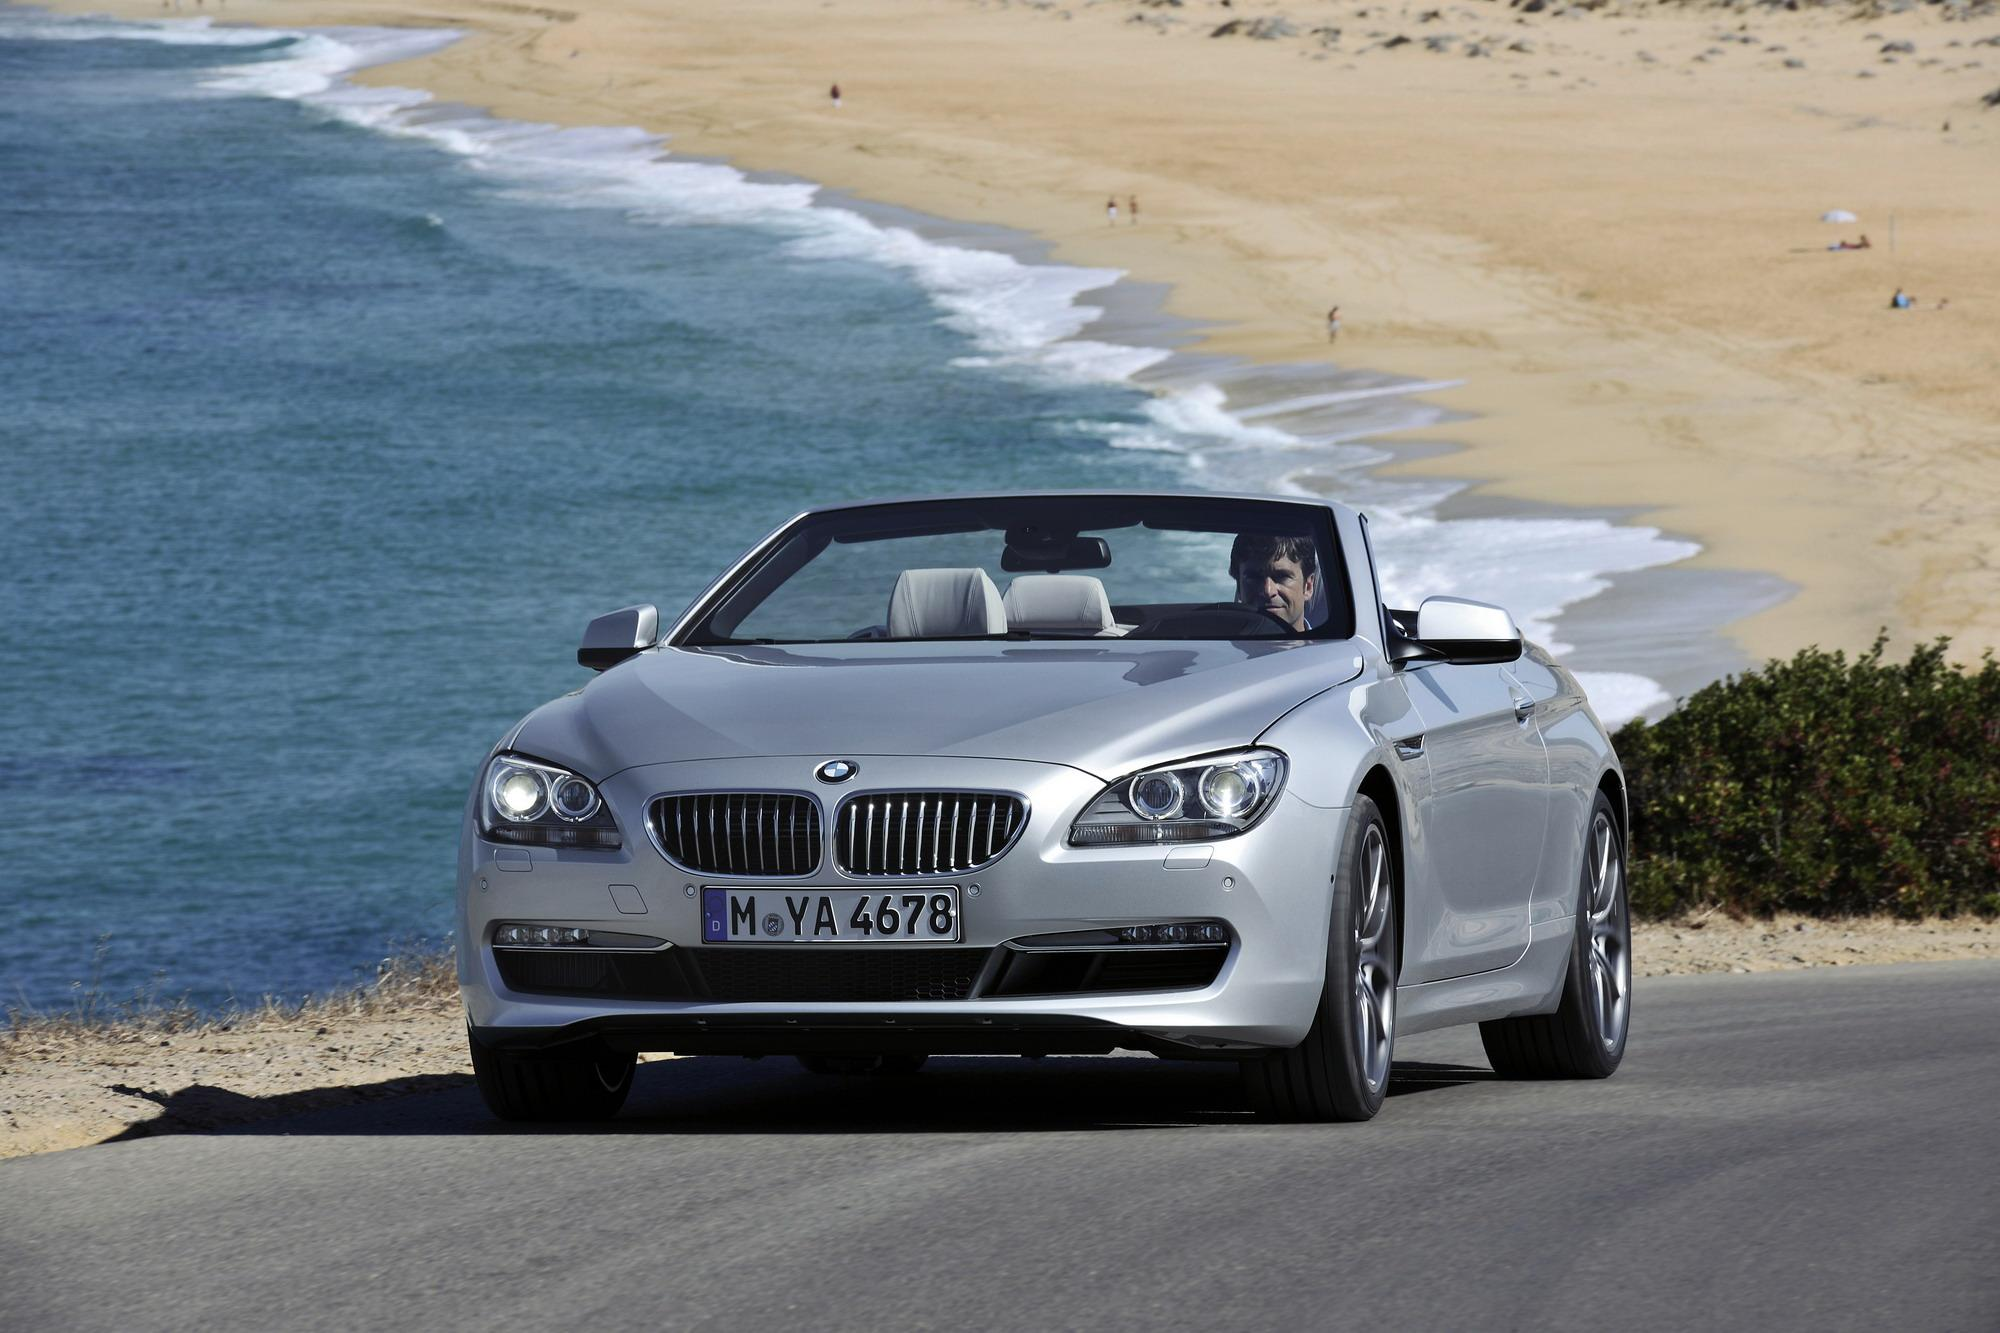 2012 BMW 650i Convertible Review - Top Speed